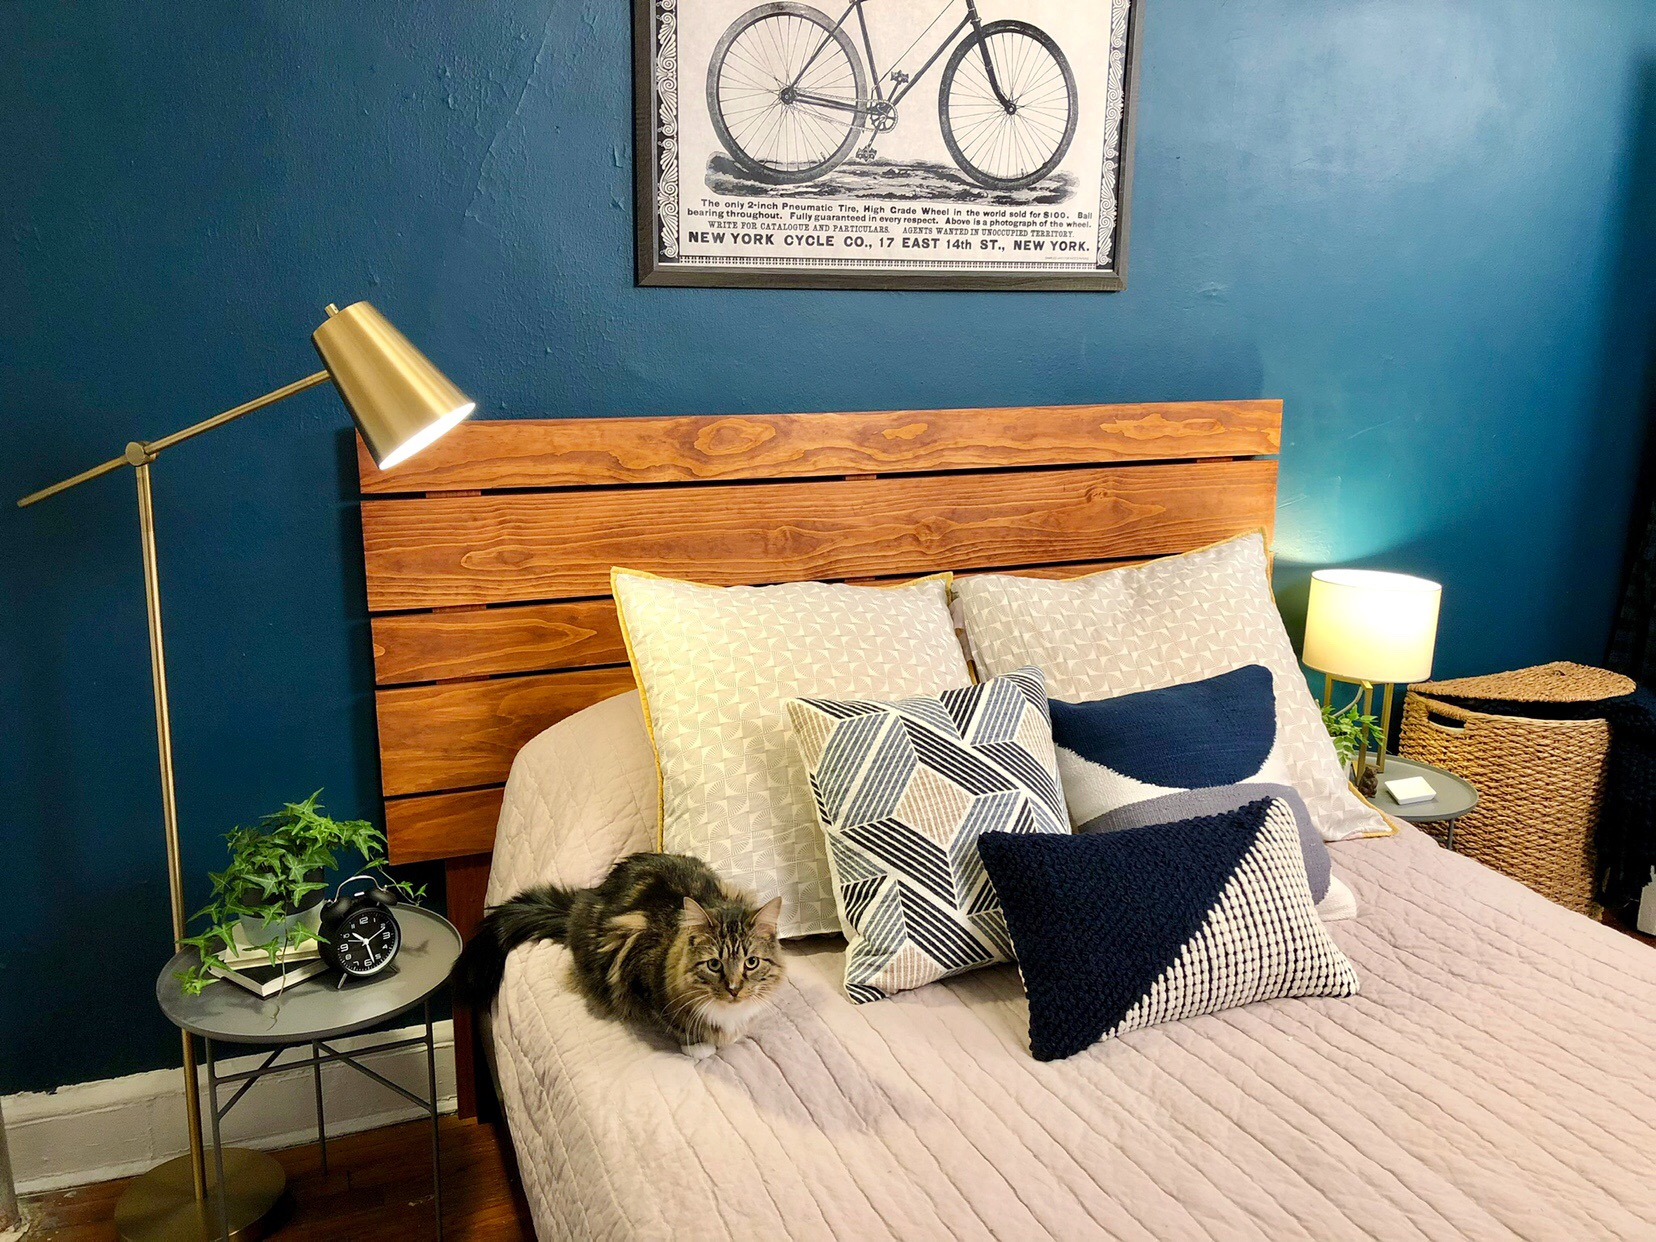 DIY Horizontal Wood Slat Headboard #wood #pinewood #bedroomdecor #headboard #woodslats #stain #woodstain #lumber #bed #burrowpillows #catdads #catsofinstagram #smallapartment #apartmentliving #nyc #astoriaqueens #queens